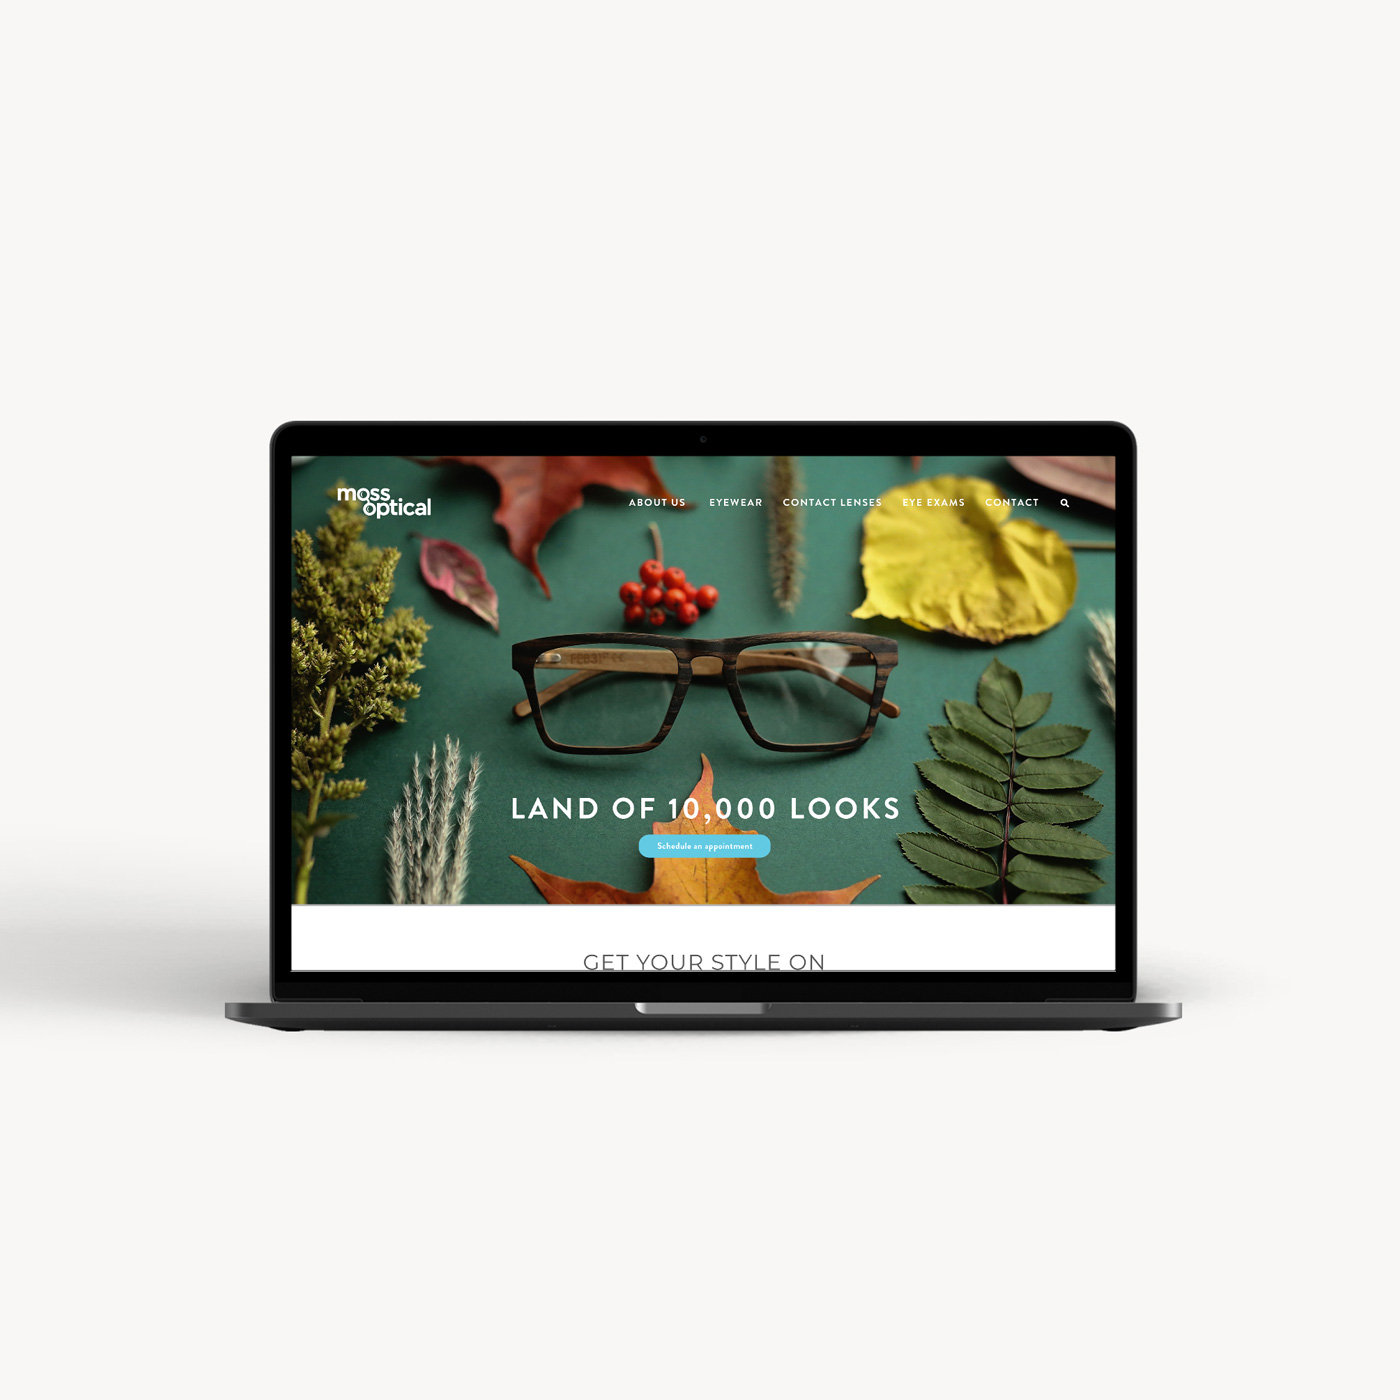 moss optical website design layout homepage